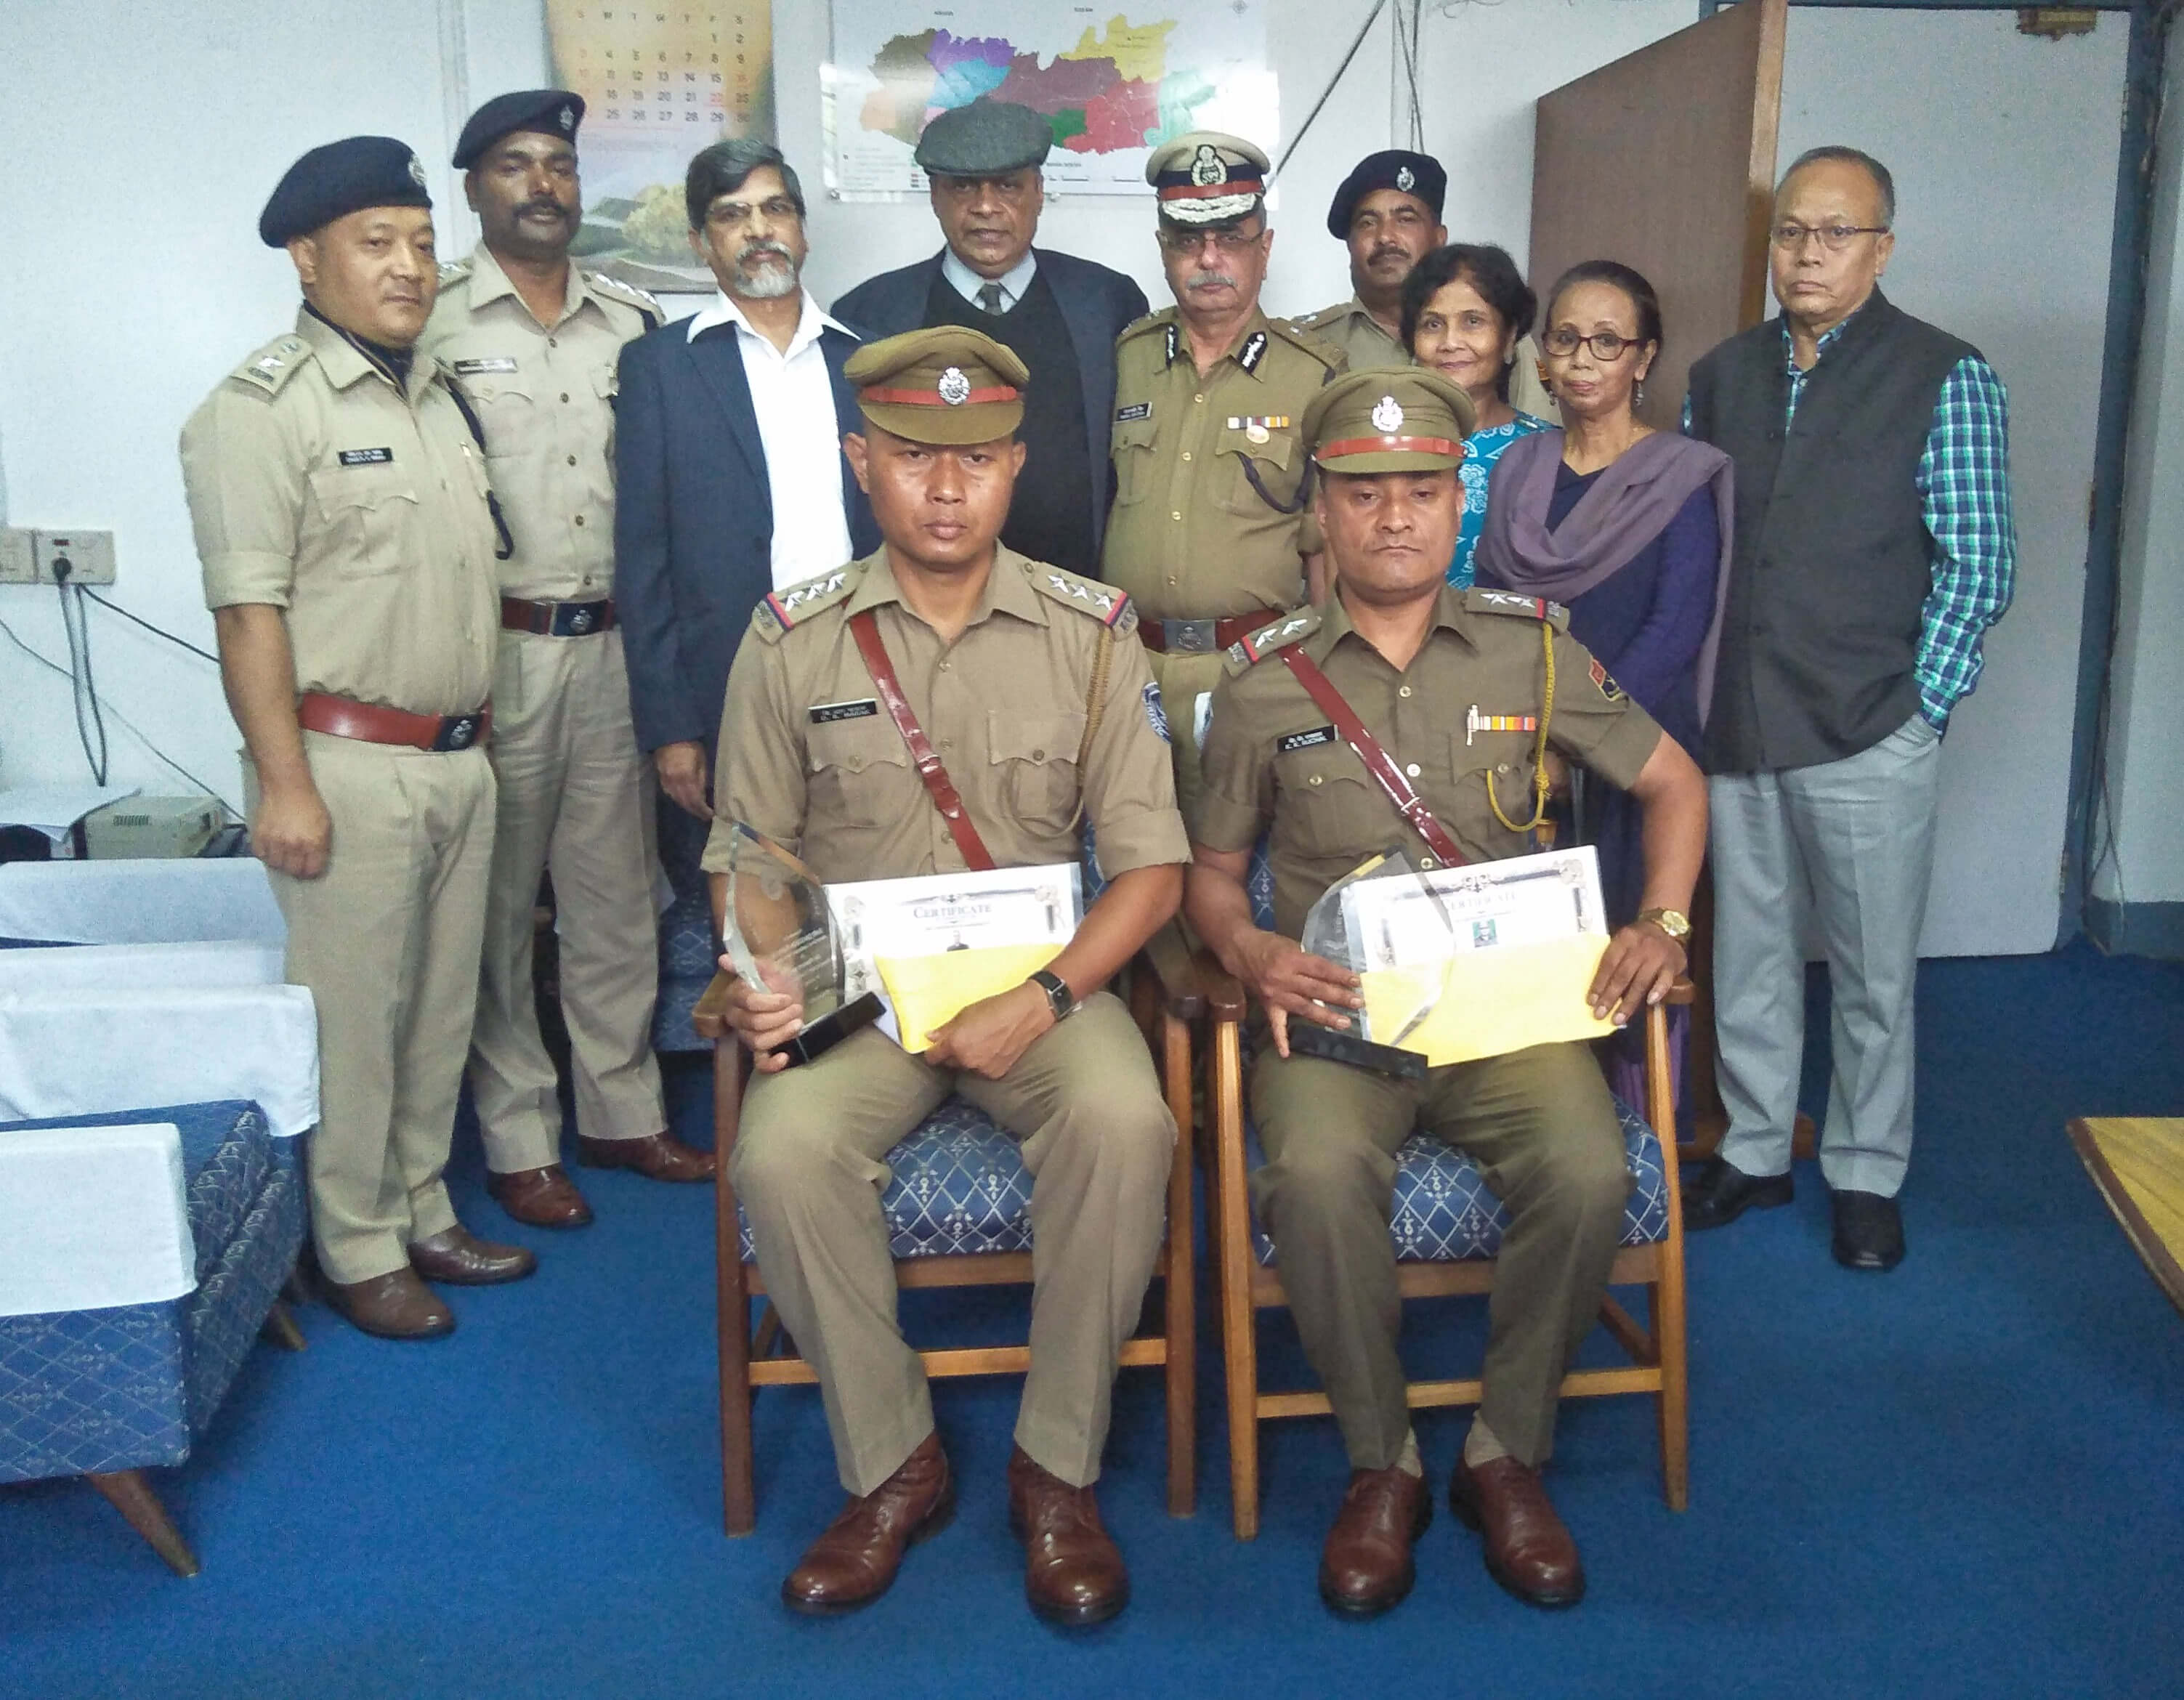 Traffic cops awarded for hard work